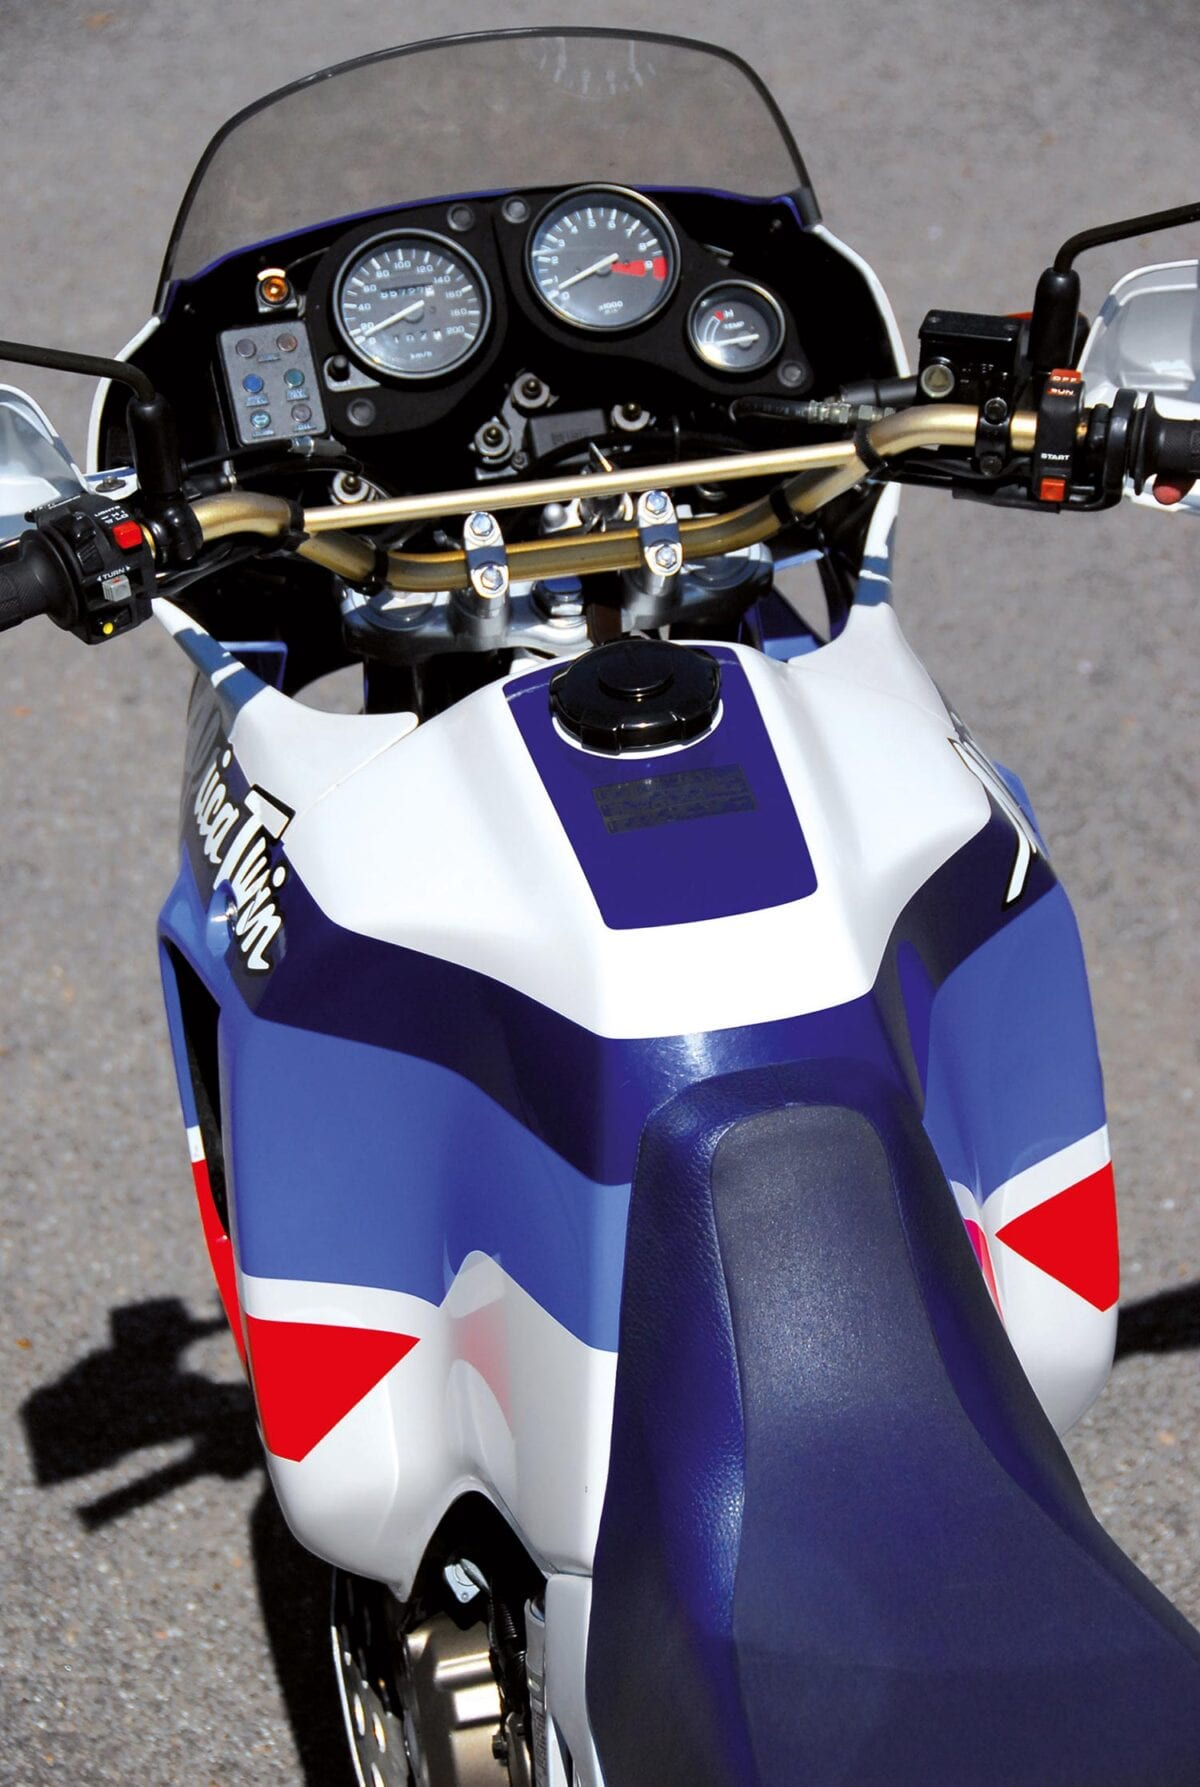 The Africa Twin's tank caused headaches when it came to production.